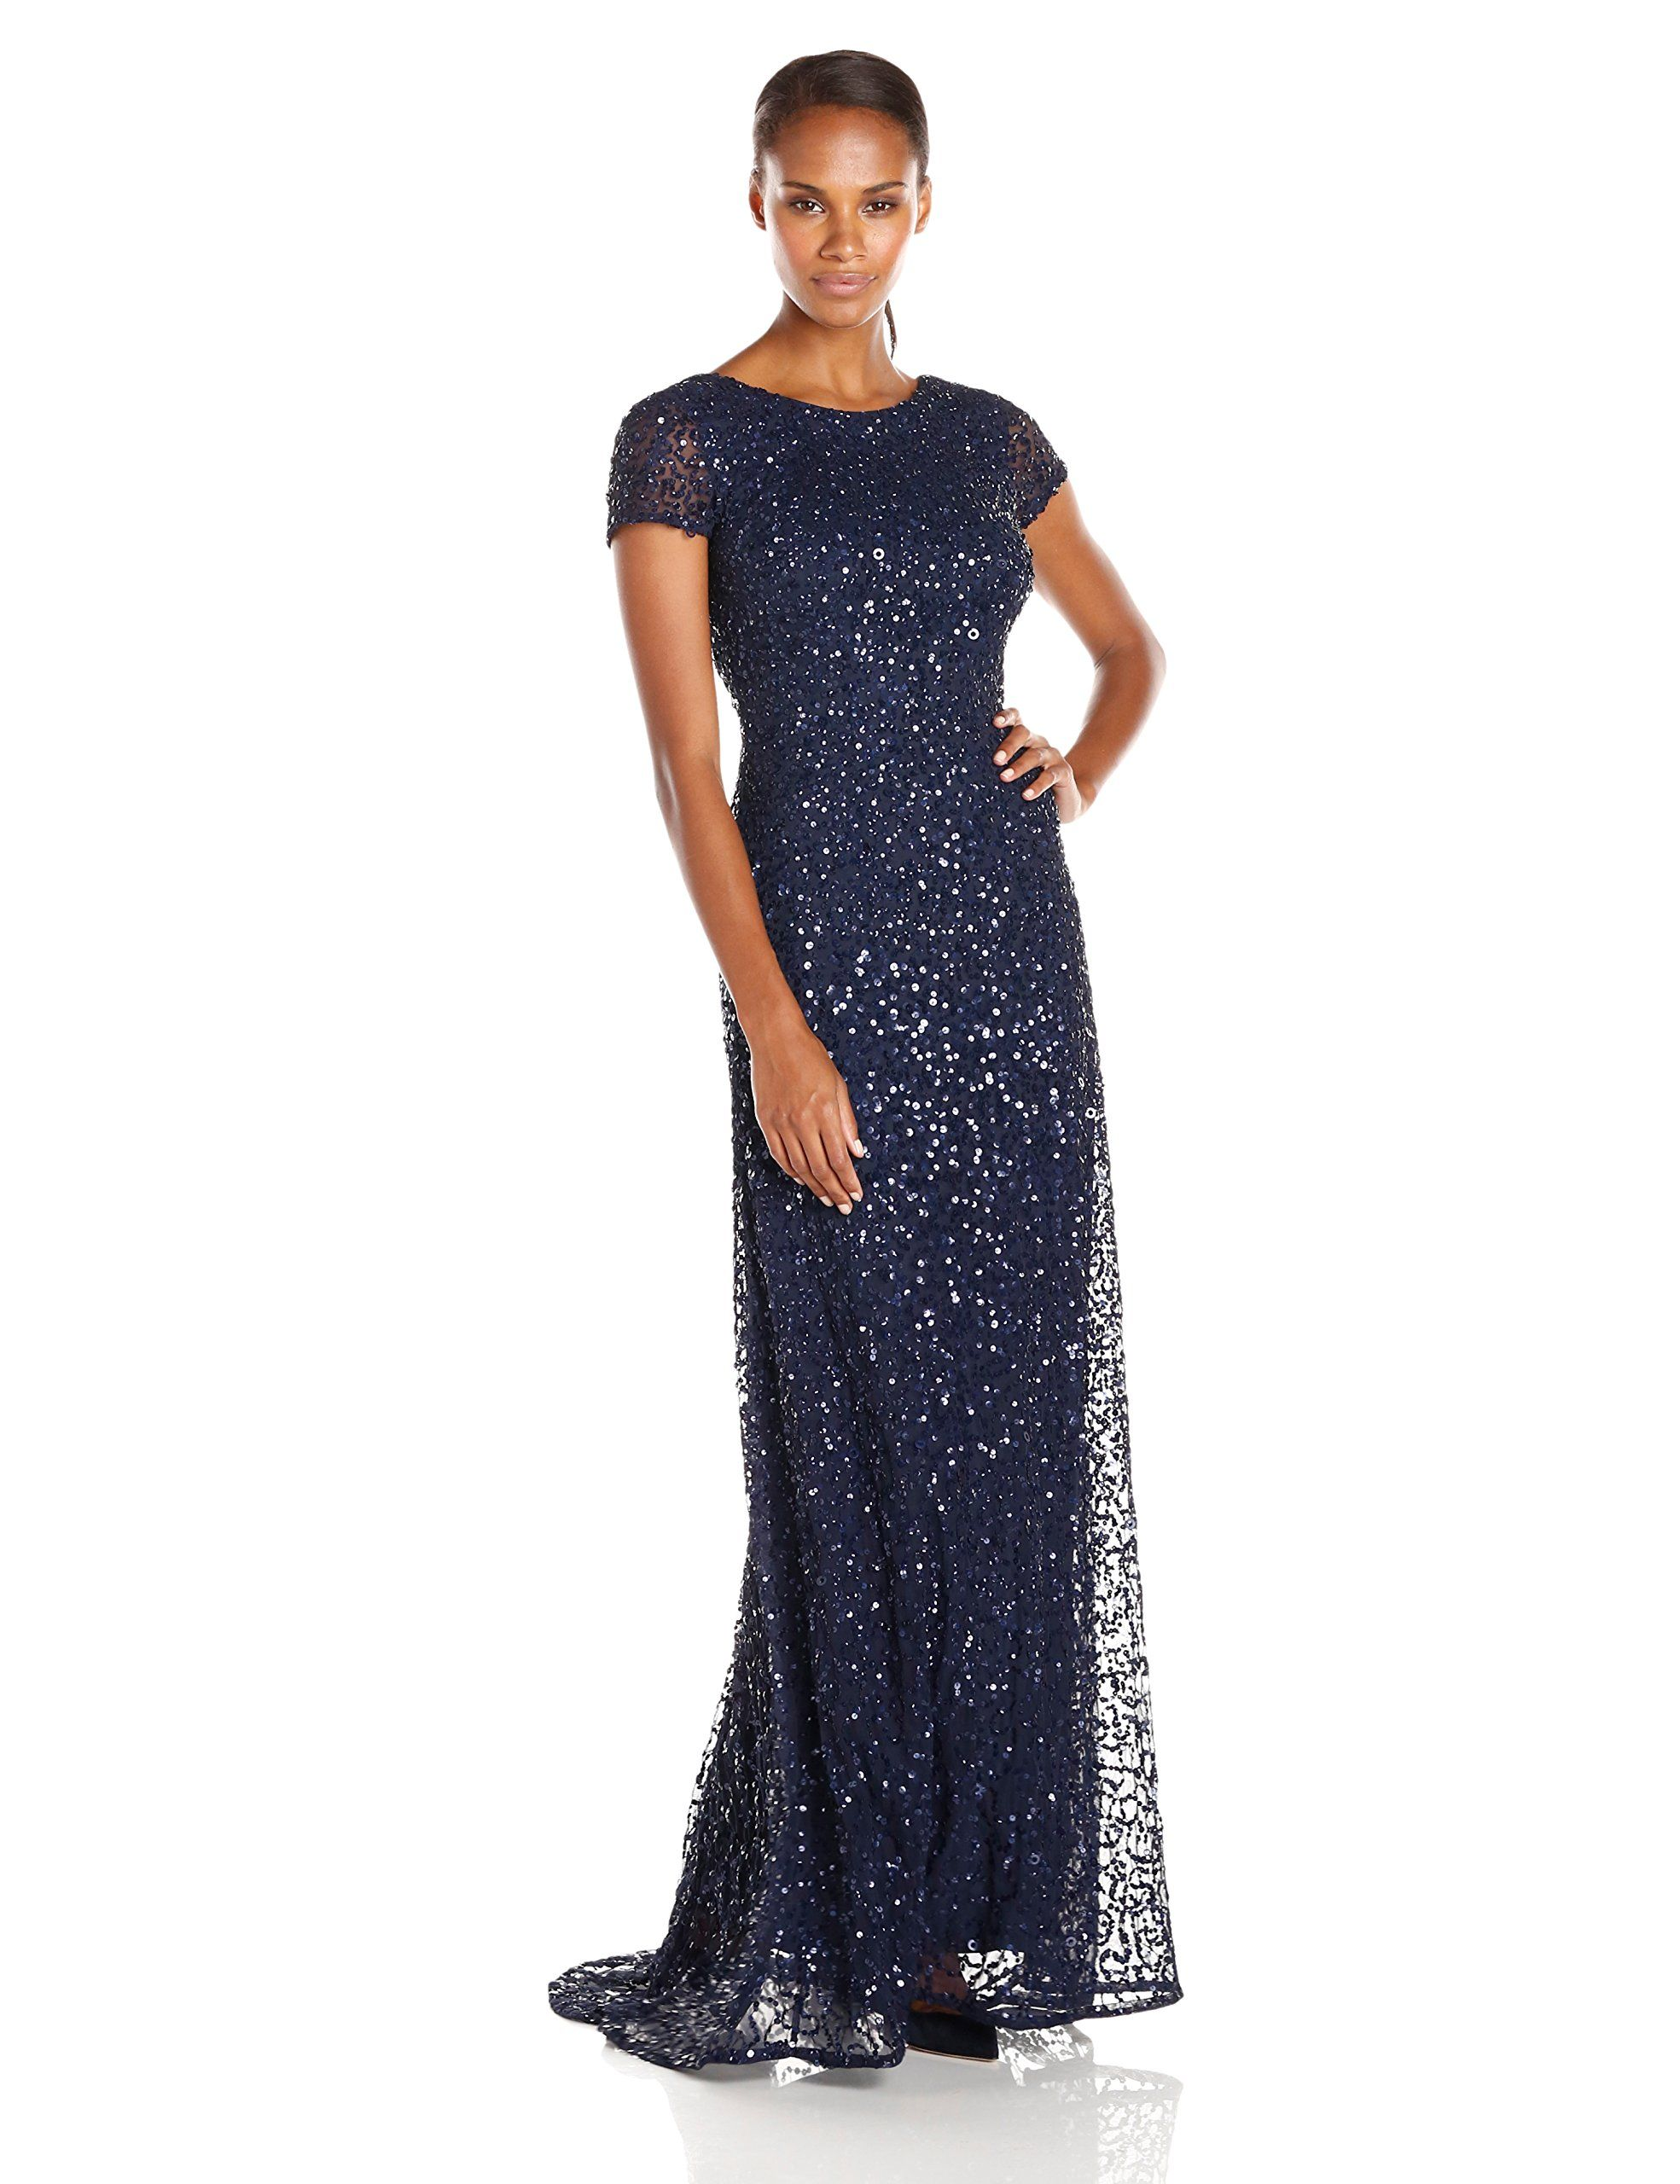 631fbd9022c Amazon.com  Adrianna Papell Women s Short Sleeve All Over Sequin Gown   Clothing